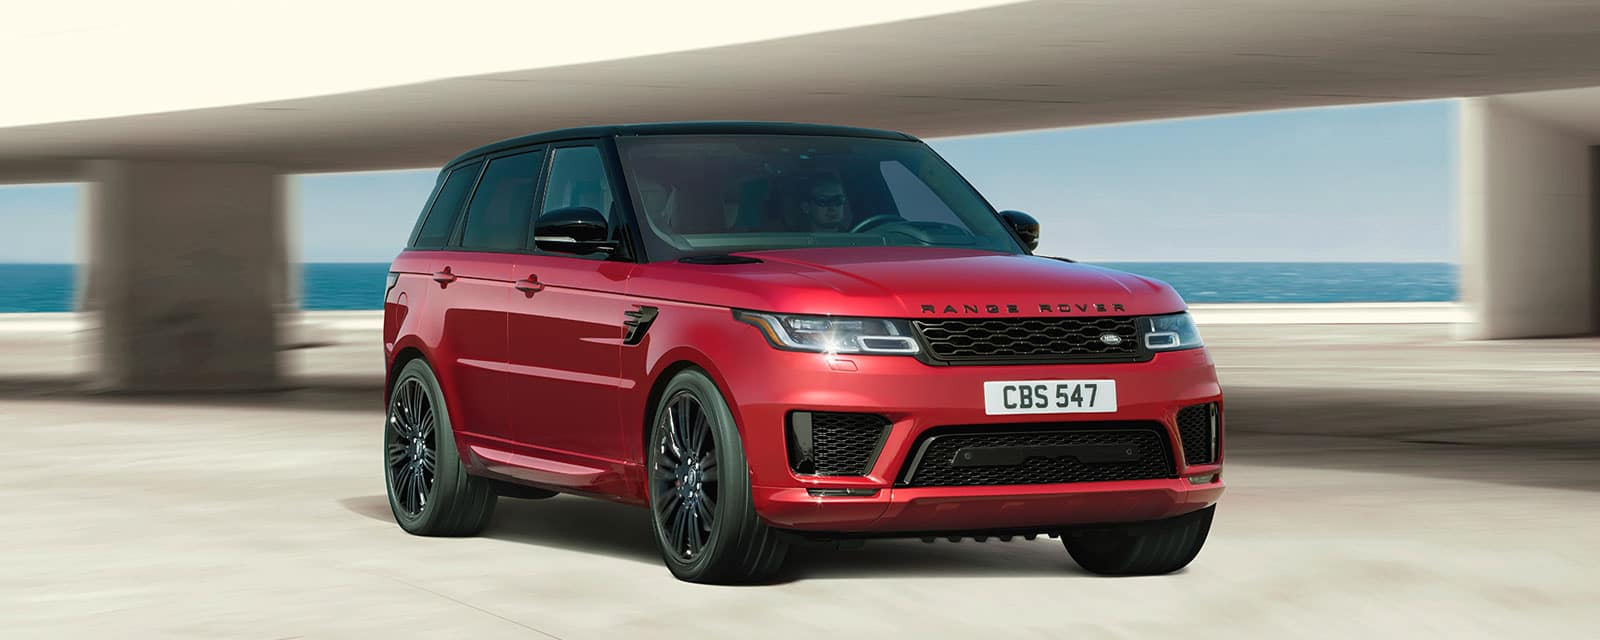 Range Rover Price | MSRP, Lease Deals | Land Rover Freeport